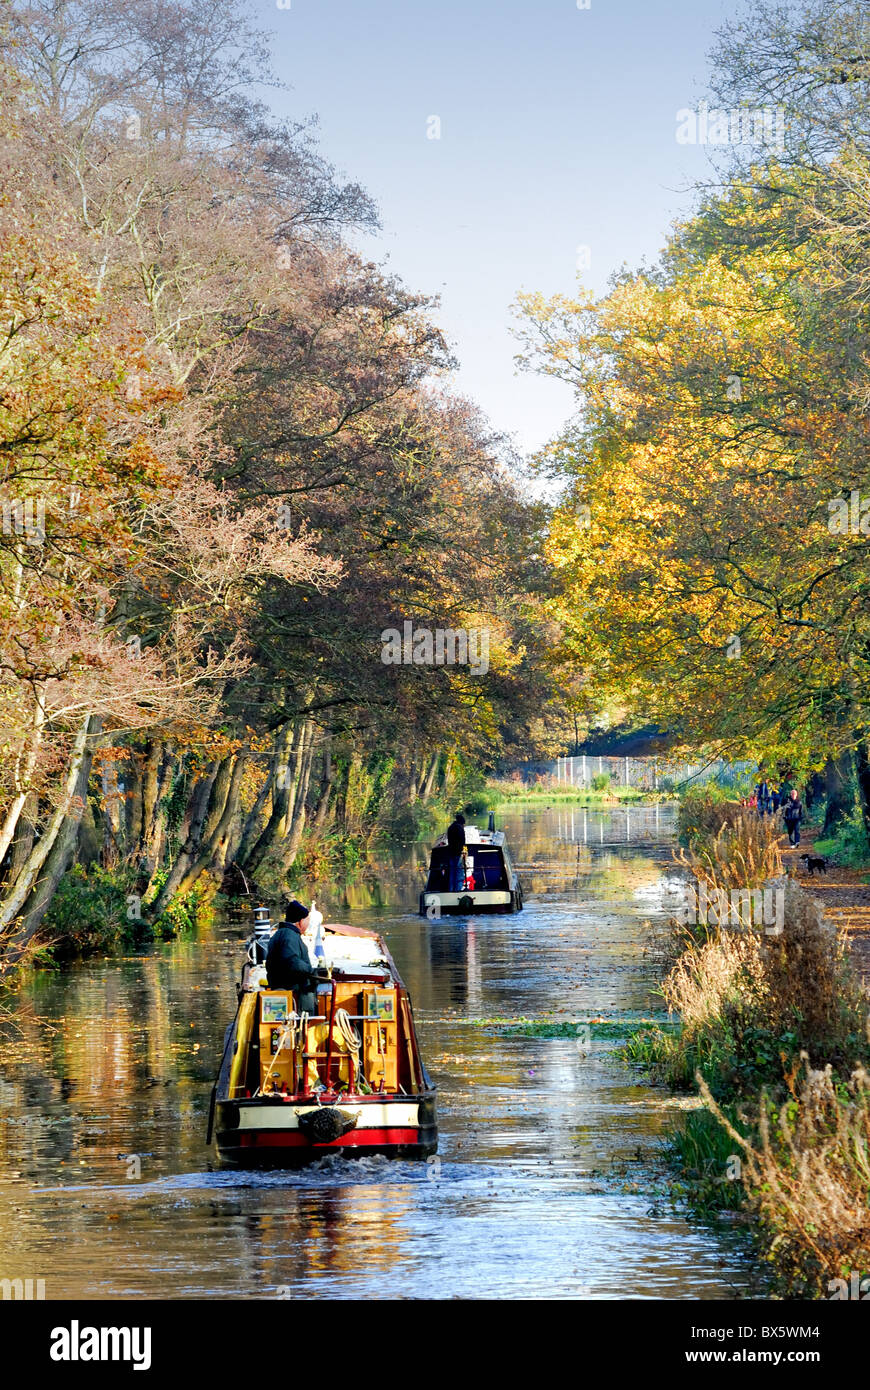 Narrow boats on the Basingstoke canal at Woodham,Surrey UK - Stock Image